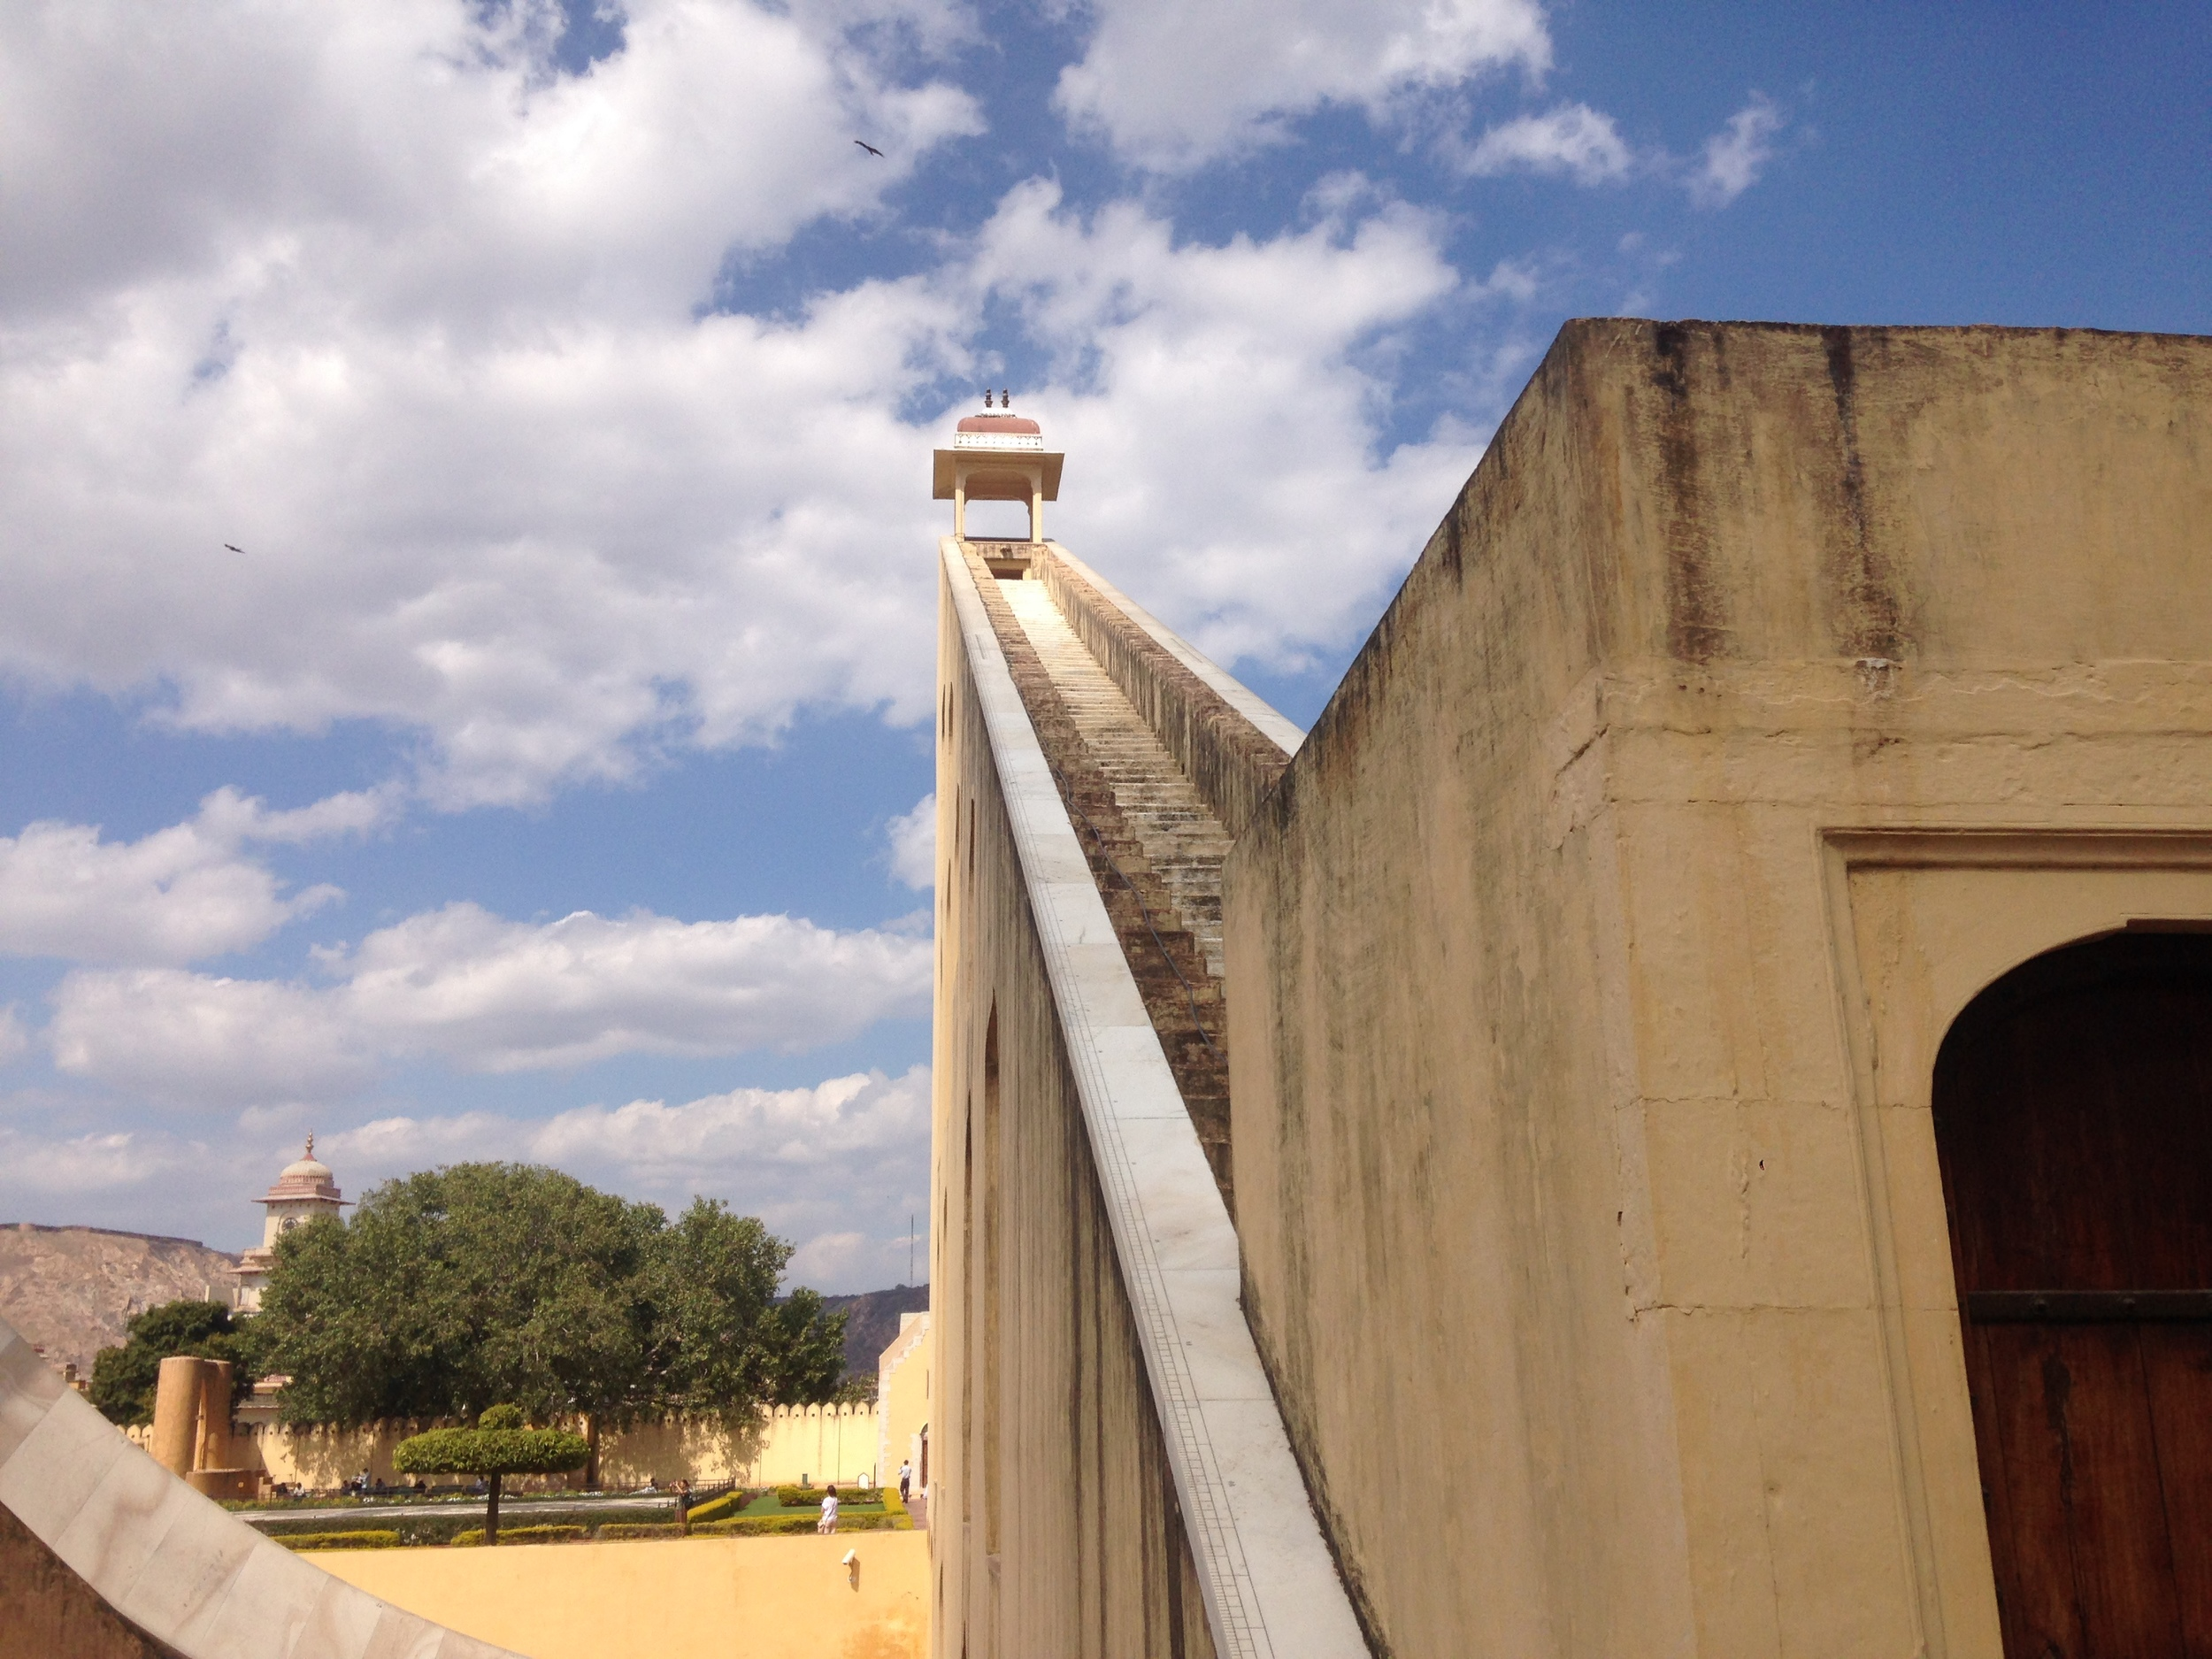 The giant sundial at Jantar Mantar